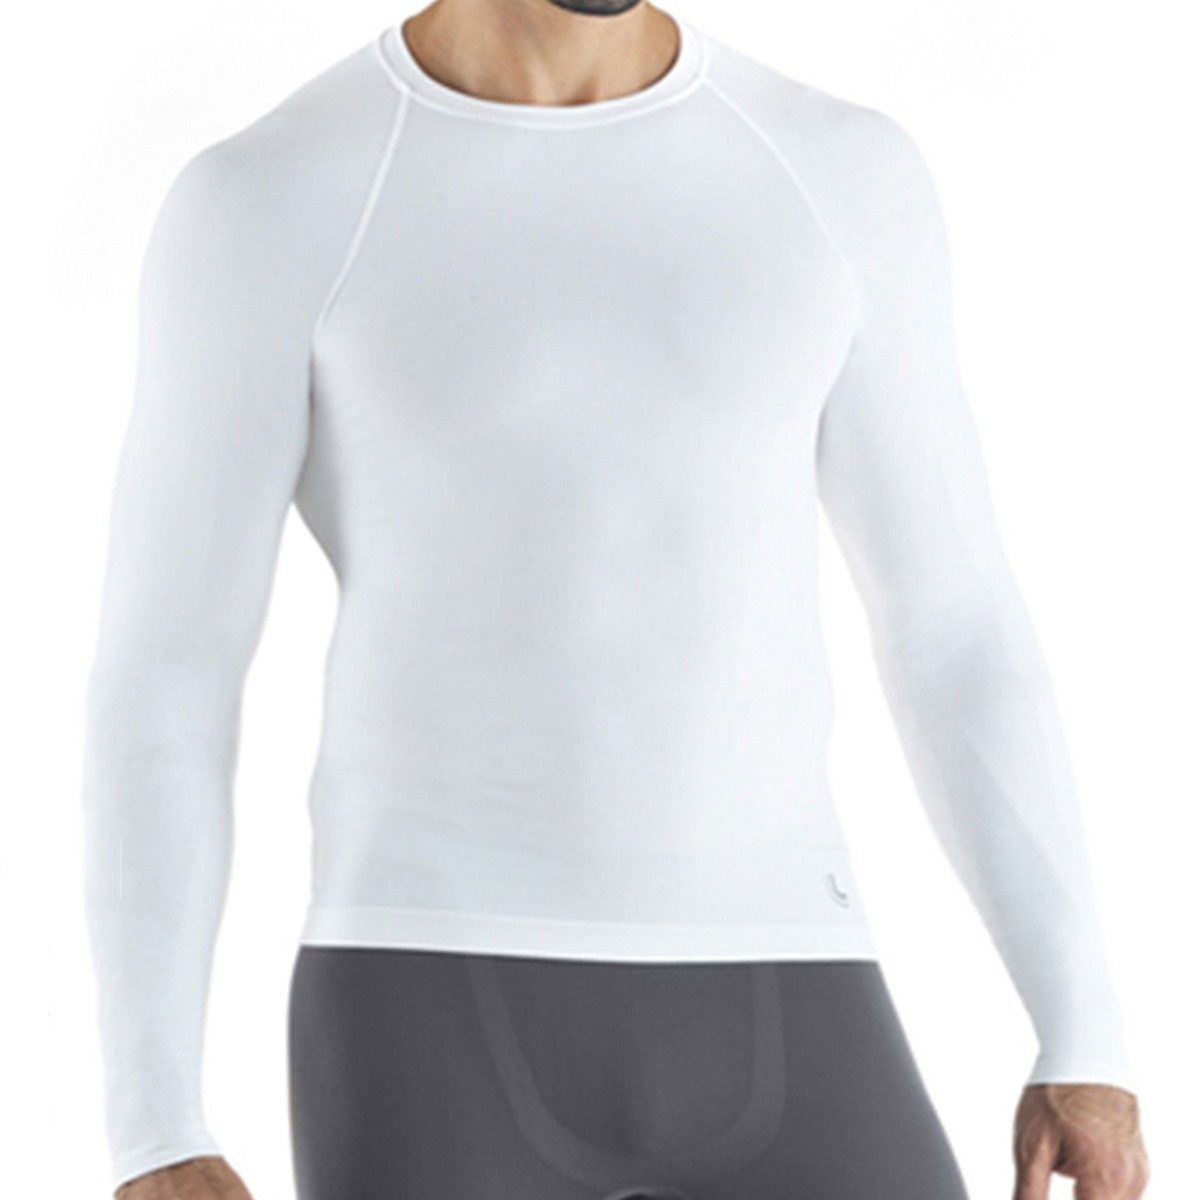 camisa térmica lupo sport advanced run manga longa s costura. Carregando  zoom. 36e92f33fd5f5